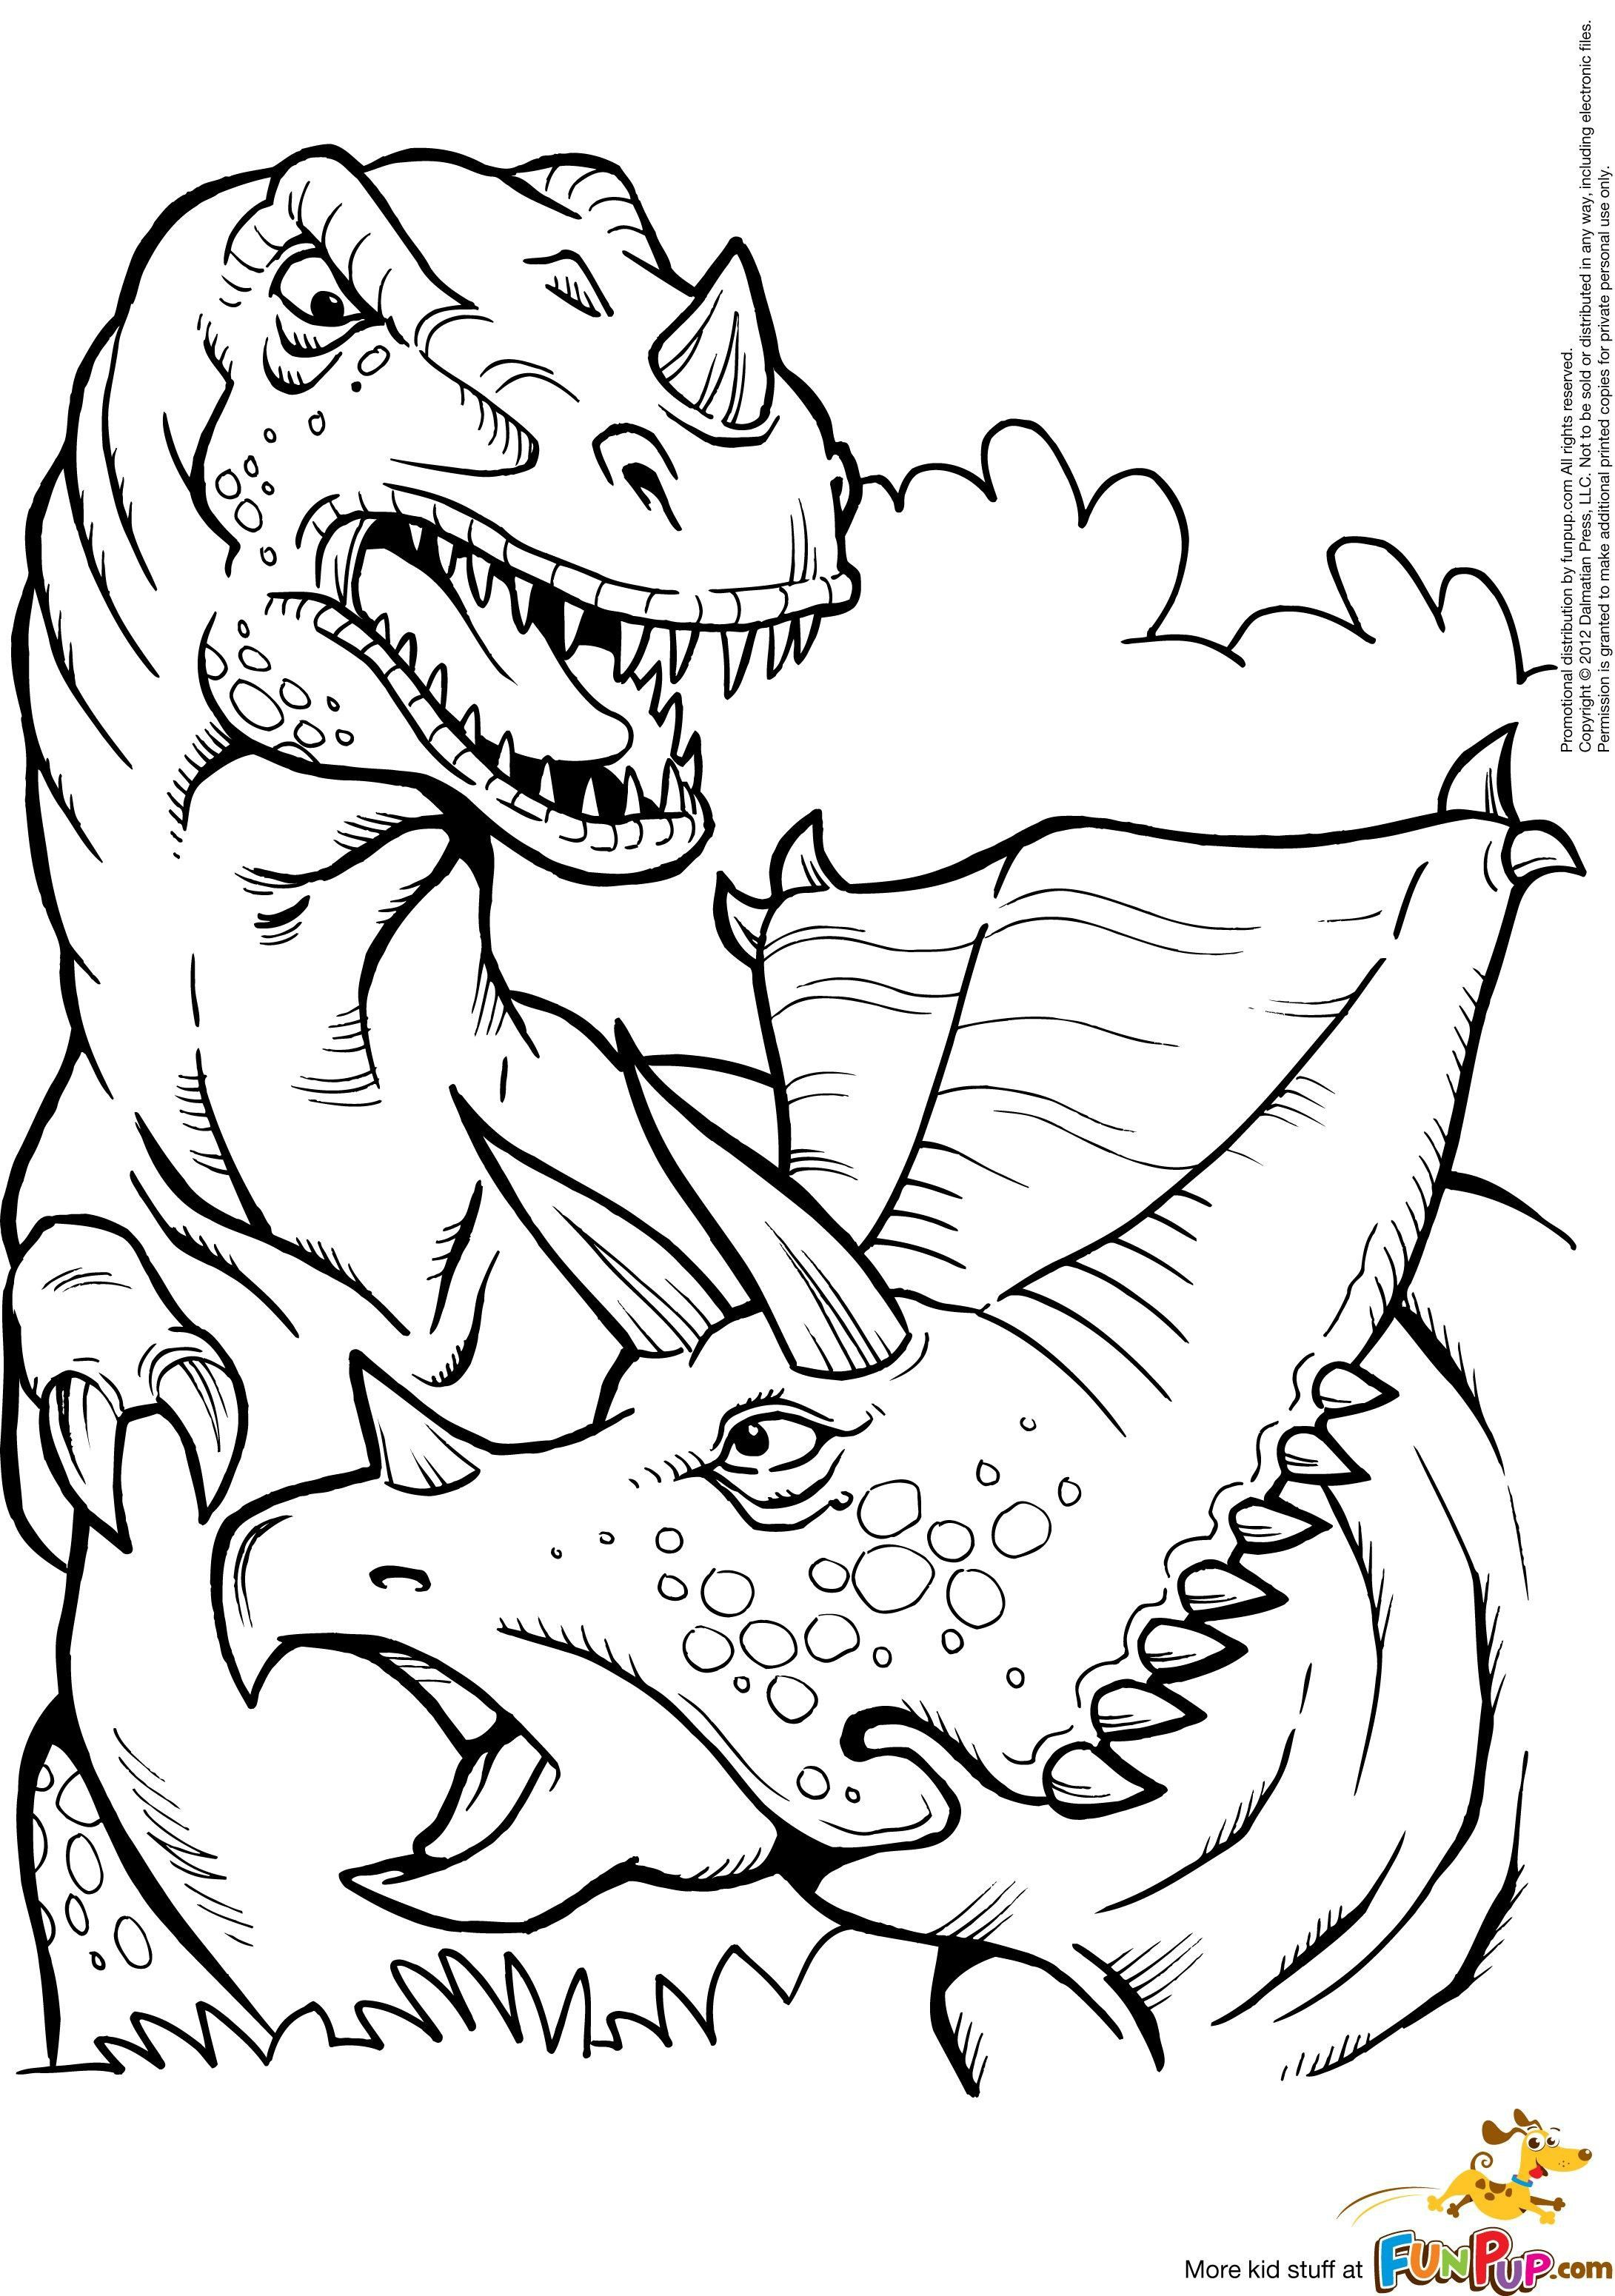 Dinosaurs Coloring Pages Dinosaur Coloring Pages Dinosaur Coloring Sheets Dinosaur Coloring